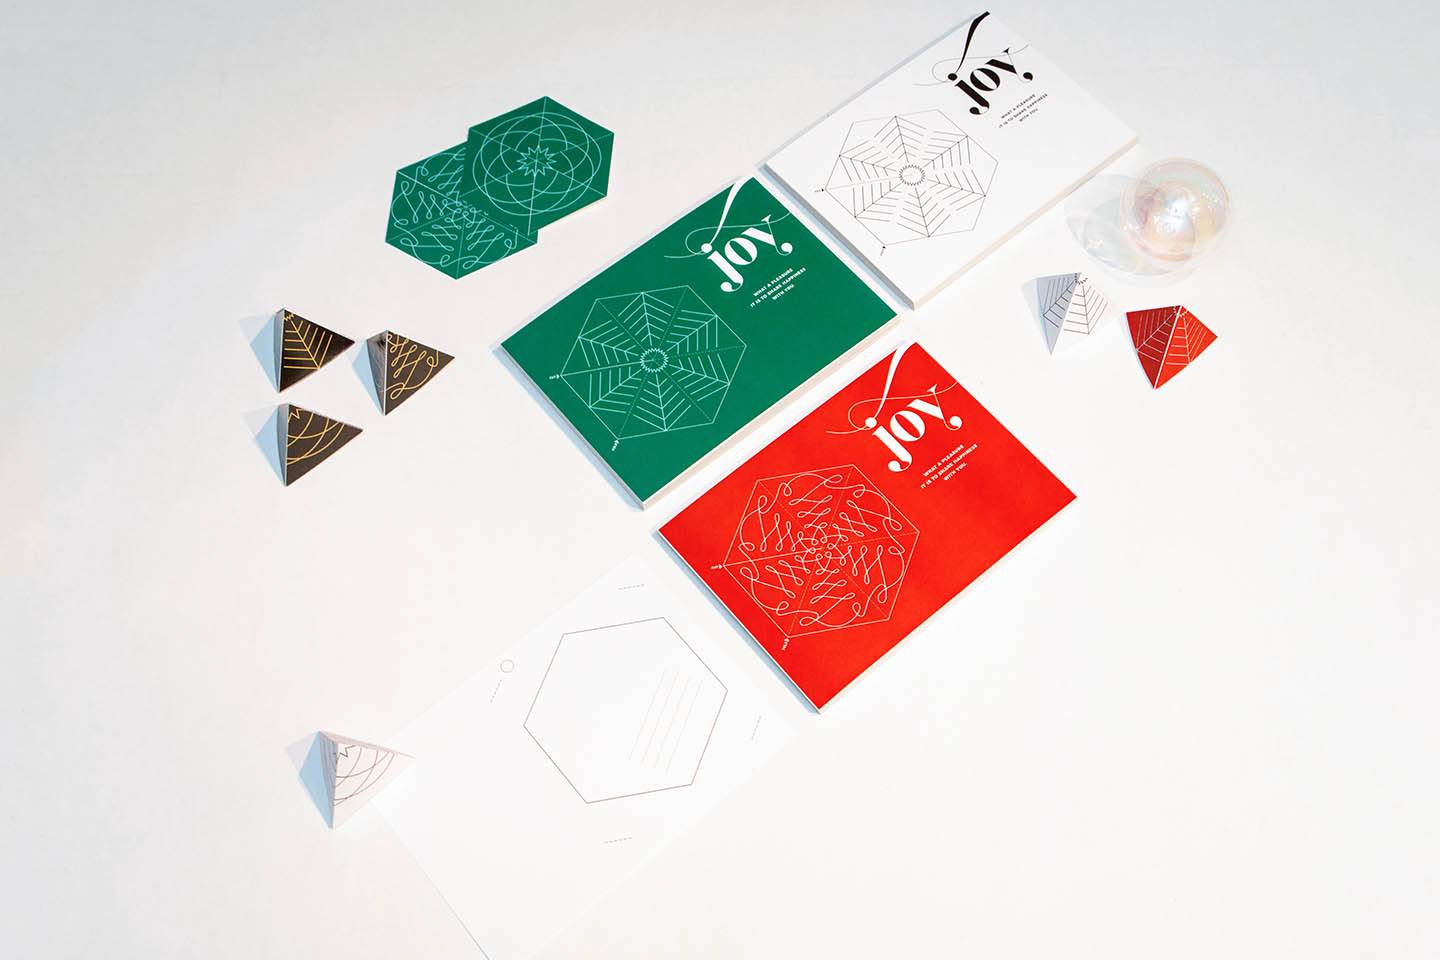 Wunderfold in its card form, punched out hexagon form, and folded 3D tree form in green, red, and black